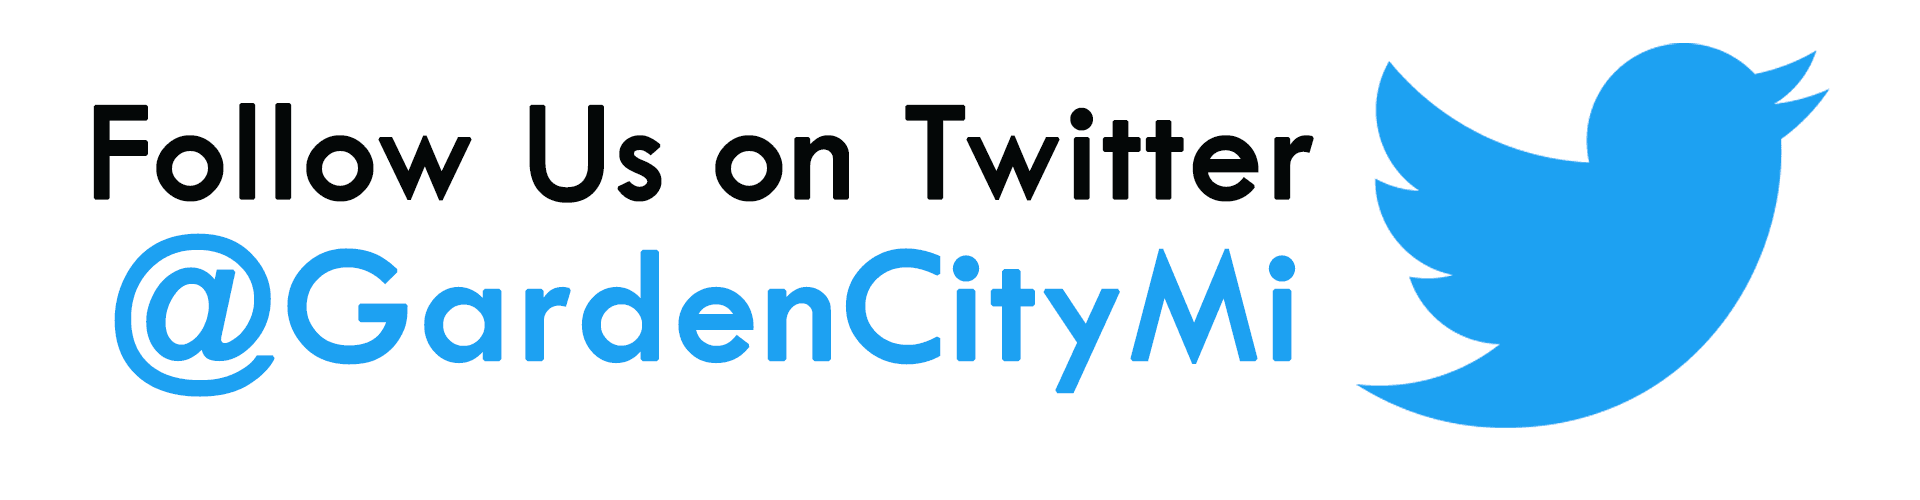 Follow Garden City on Twitter